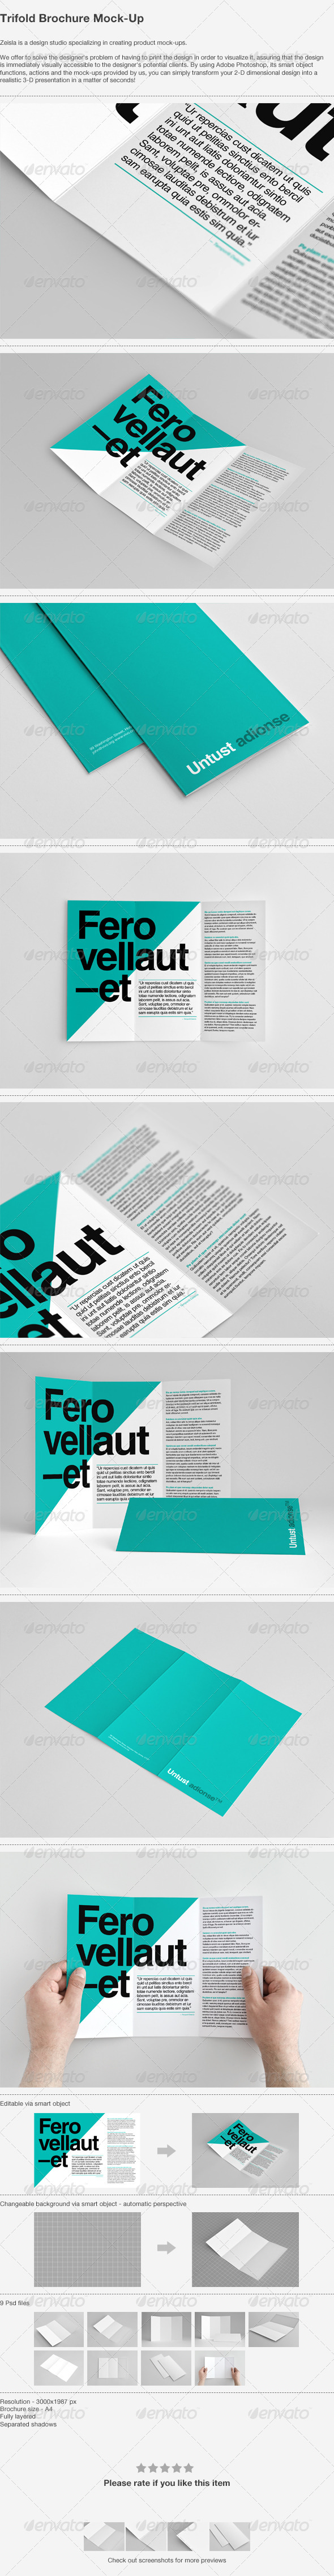 Trifold Brochure Mock-Up